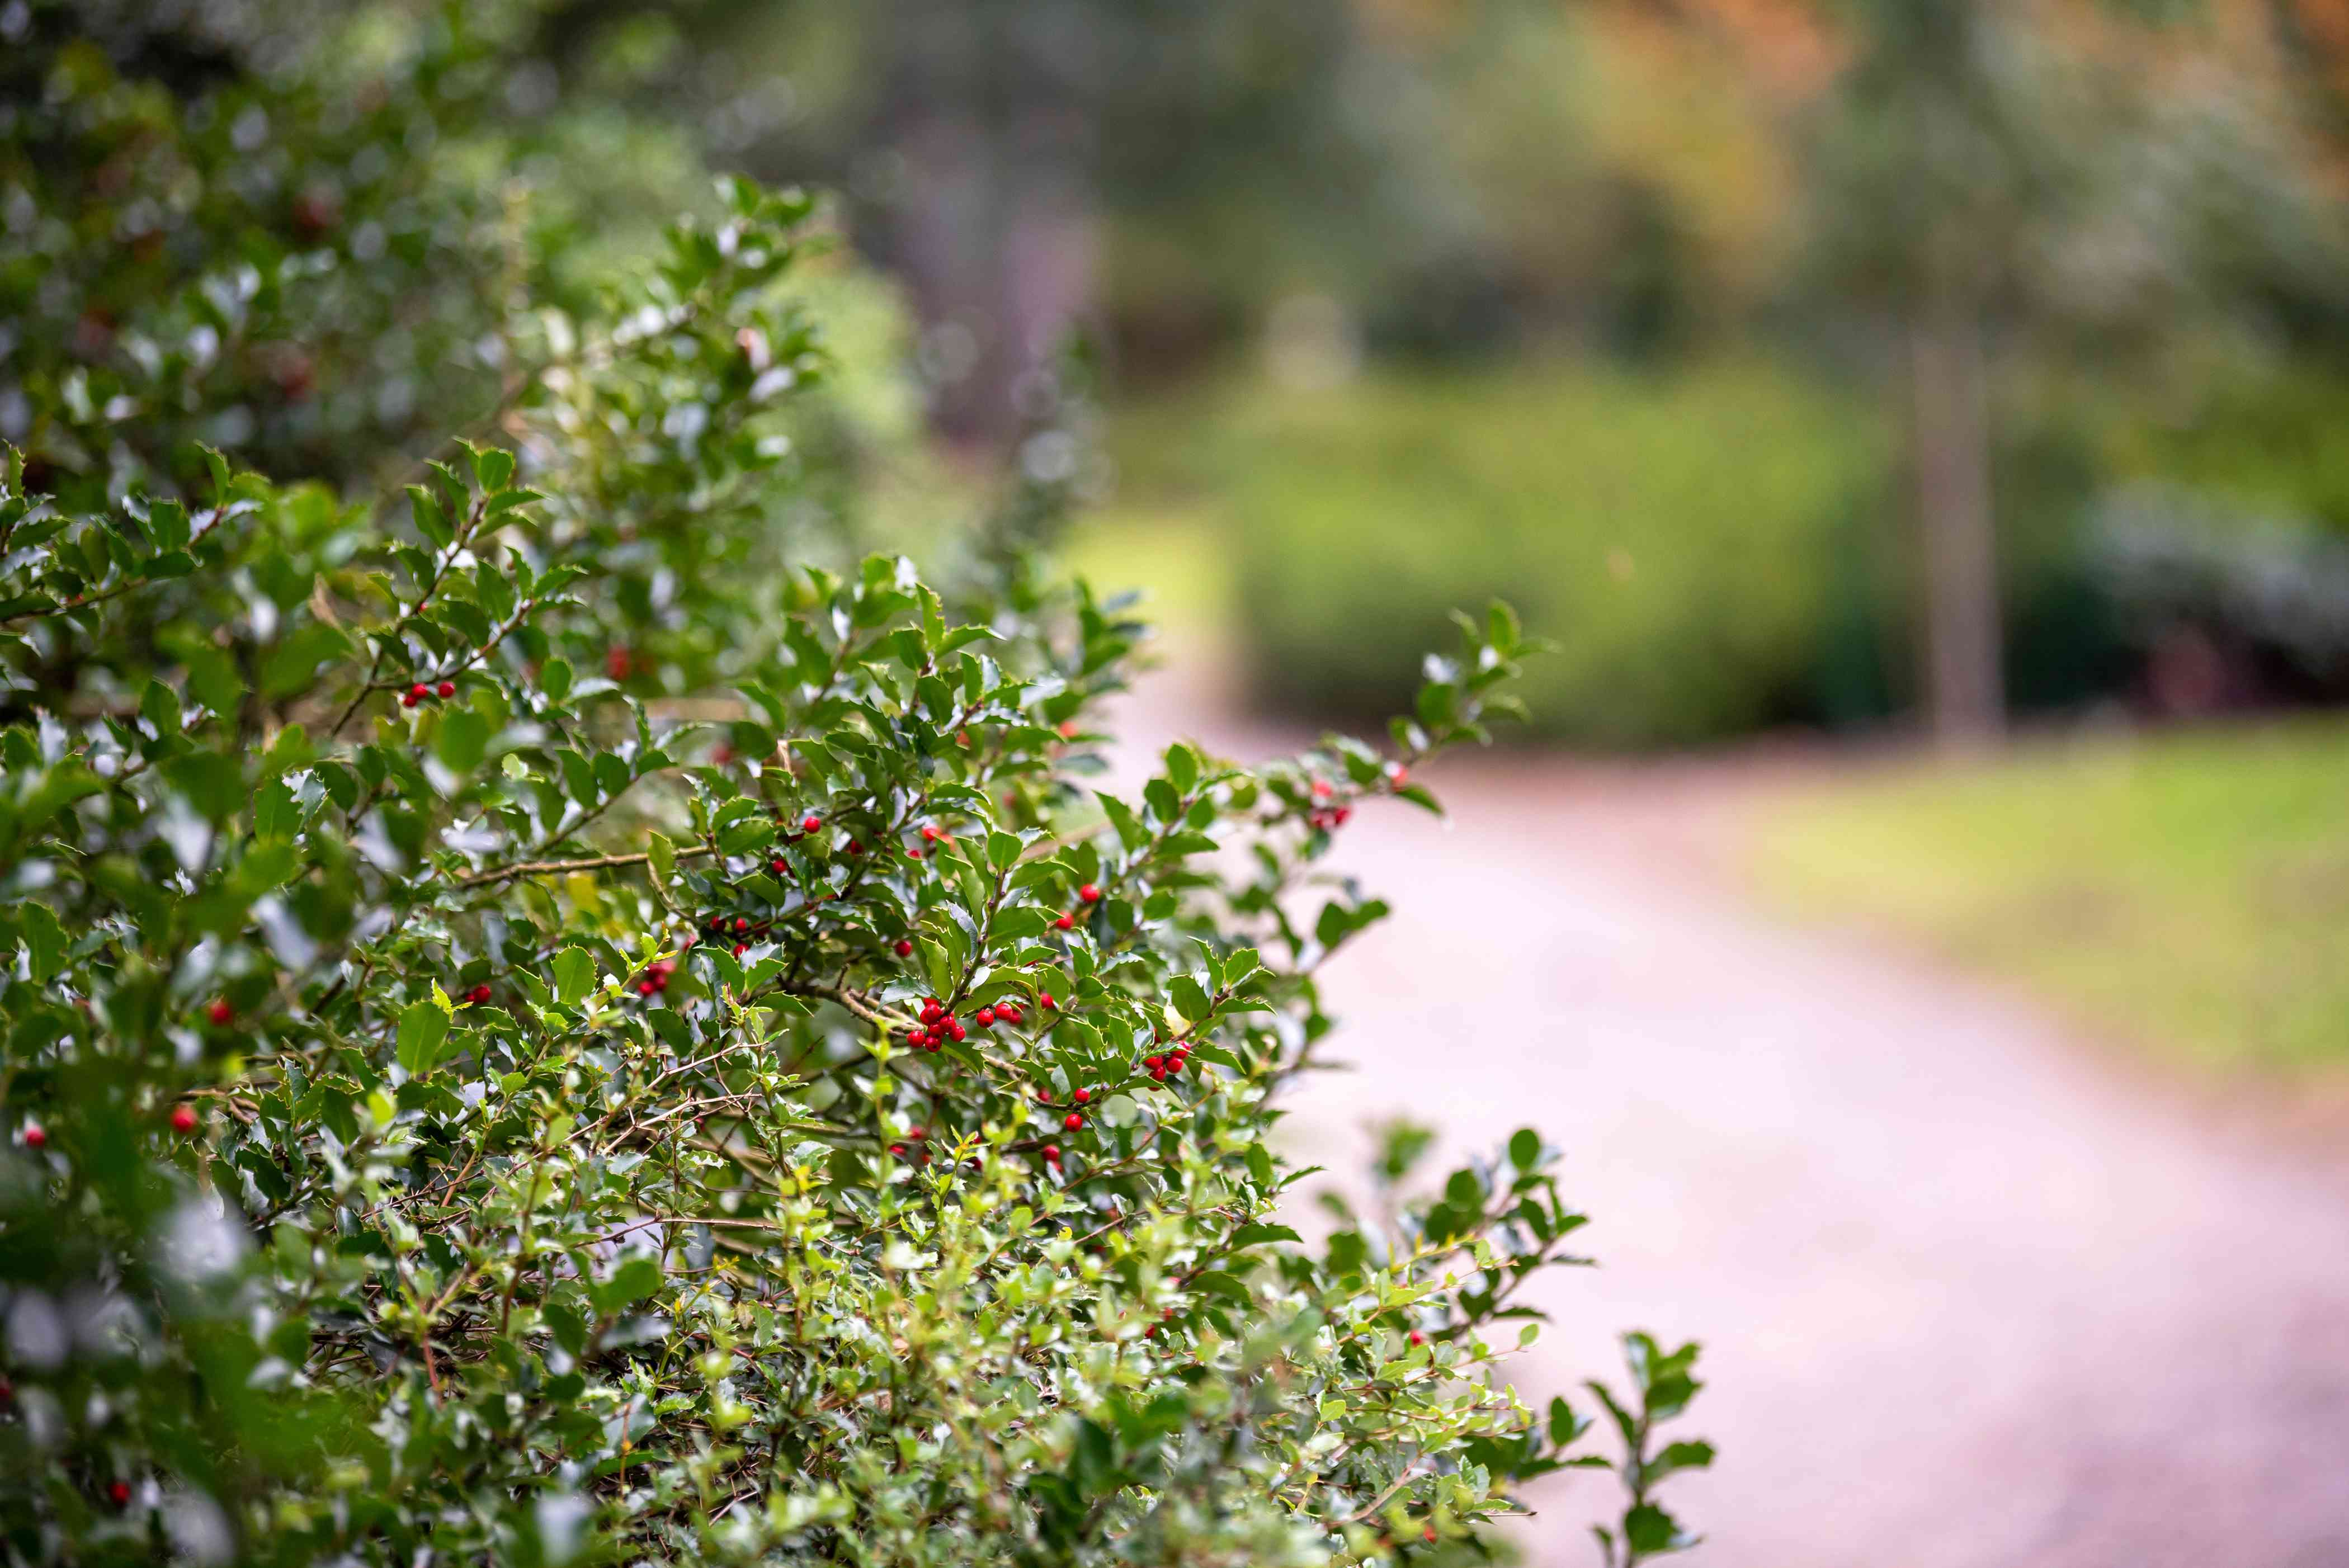 Blue princess holly shrub branches extending toward sidewalk with glossy leaves